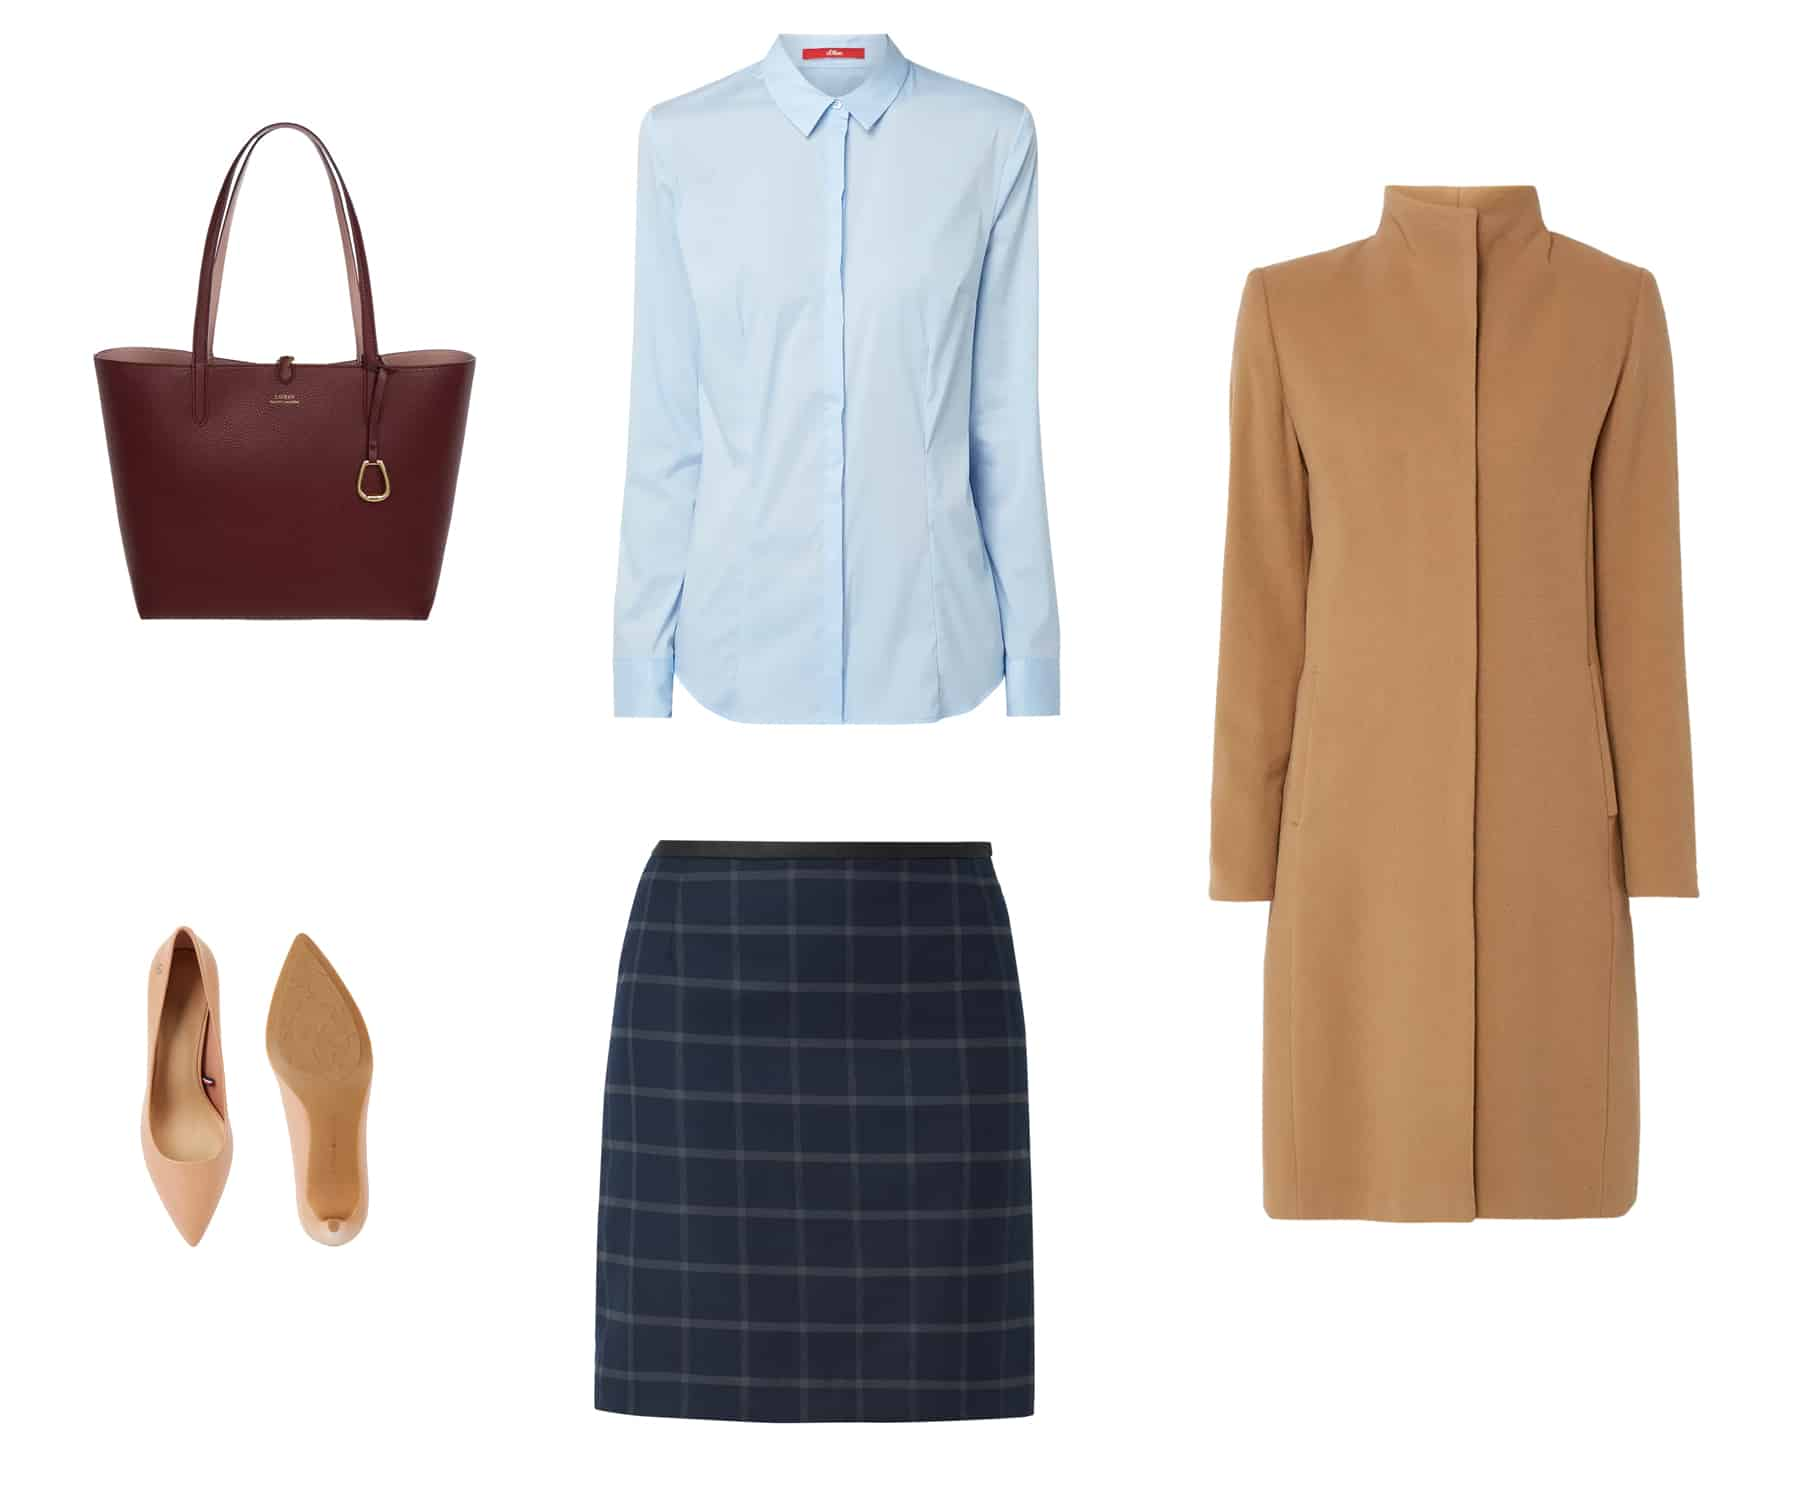 fall fashion - brown handbag, women's blue shirt with covered buttons, brown wool camel winter coat with covered buttons, beige high heels, navy blue plaid skirt